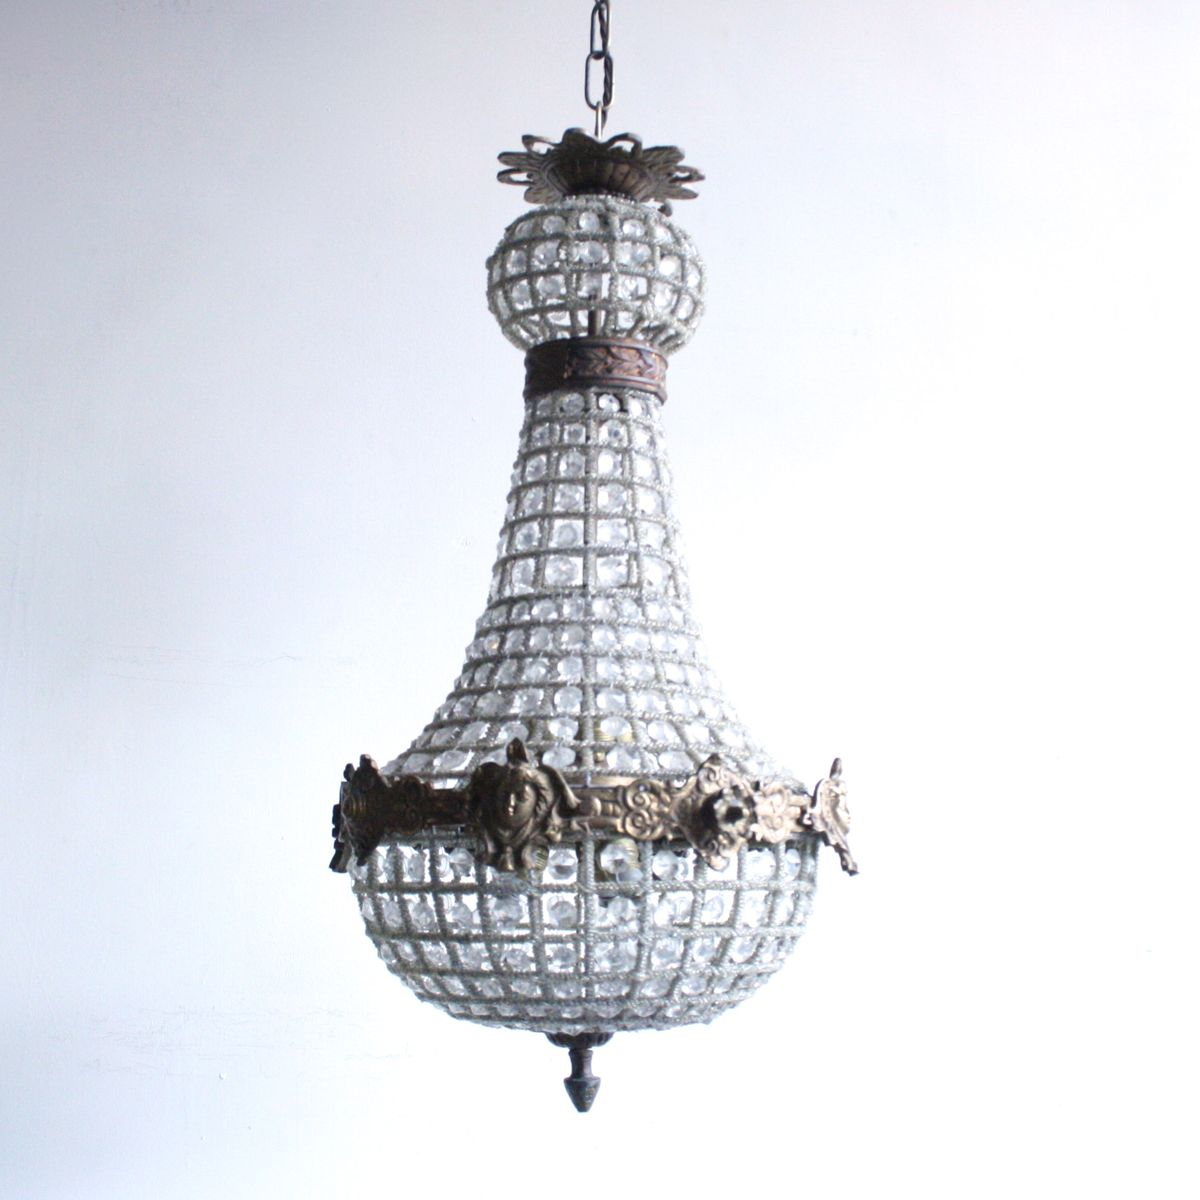 Antique Empire Balloon Chandelier - Antique Empire Balloon Chandelier For Sale At Pamono